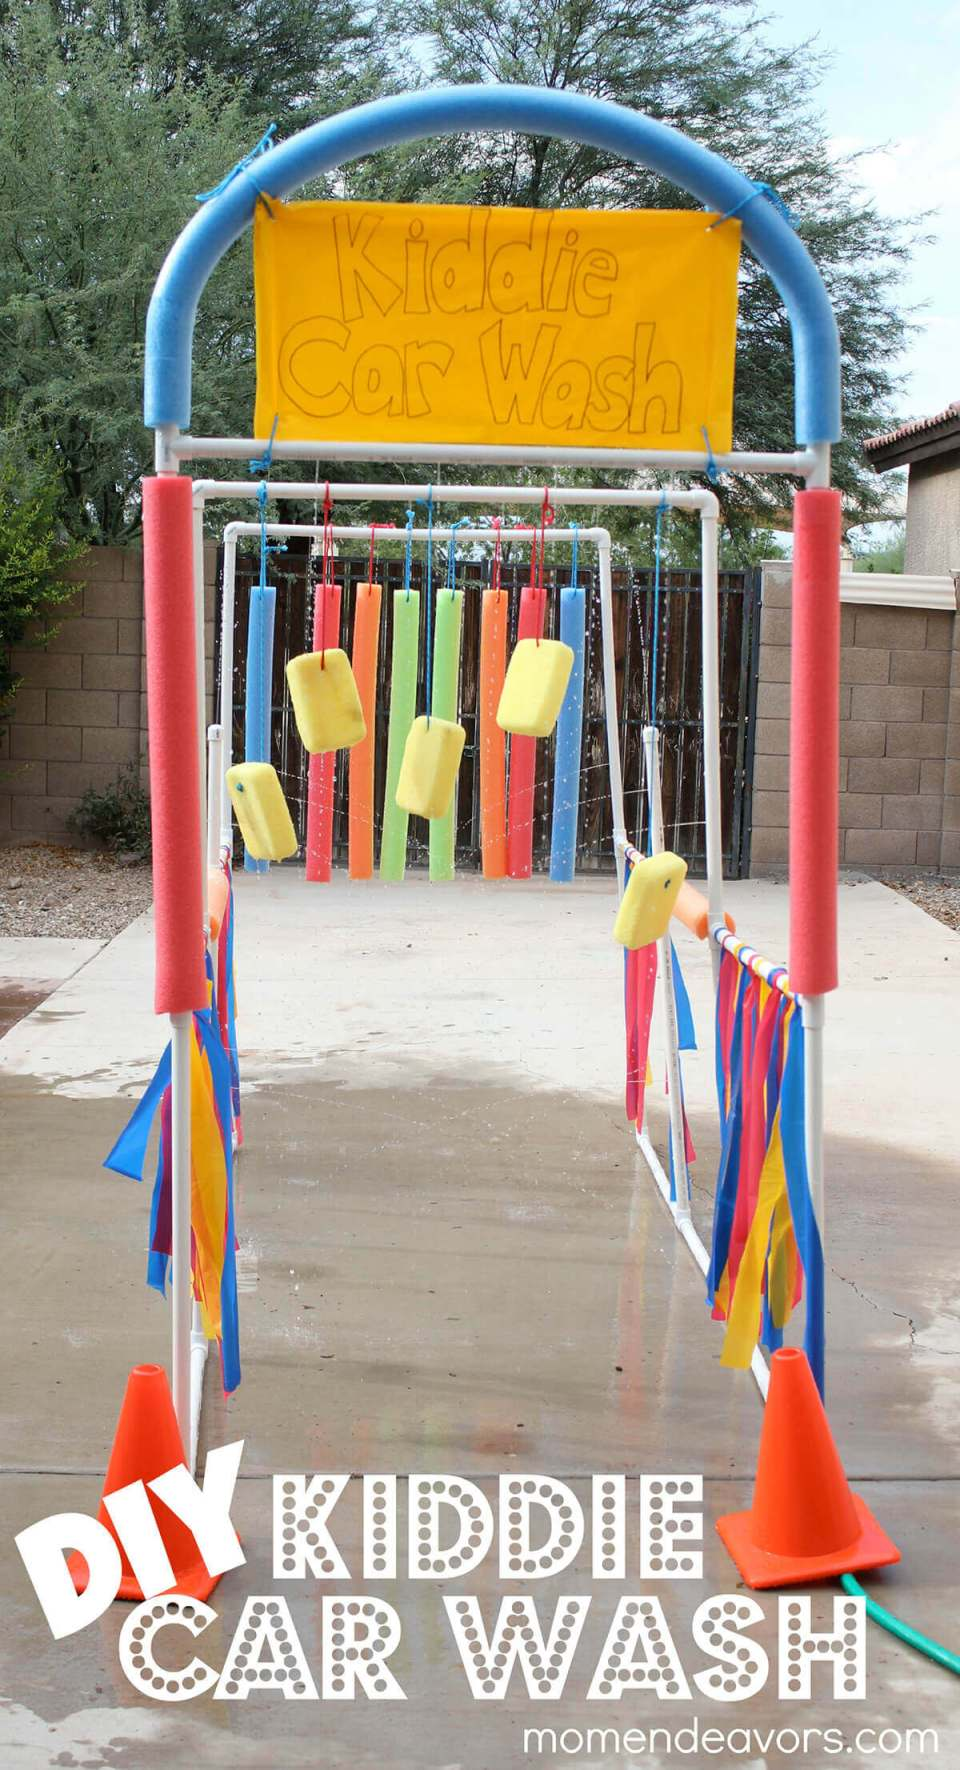 Super-Soaking Kiddie Carwash Sprinkler Setup